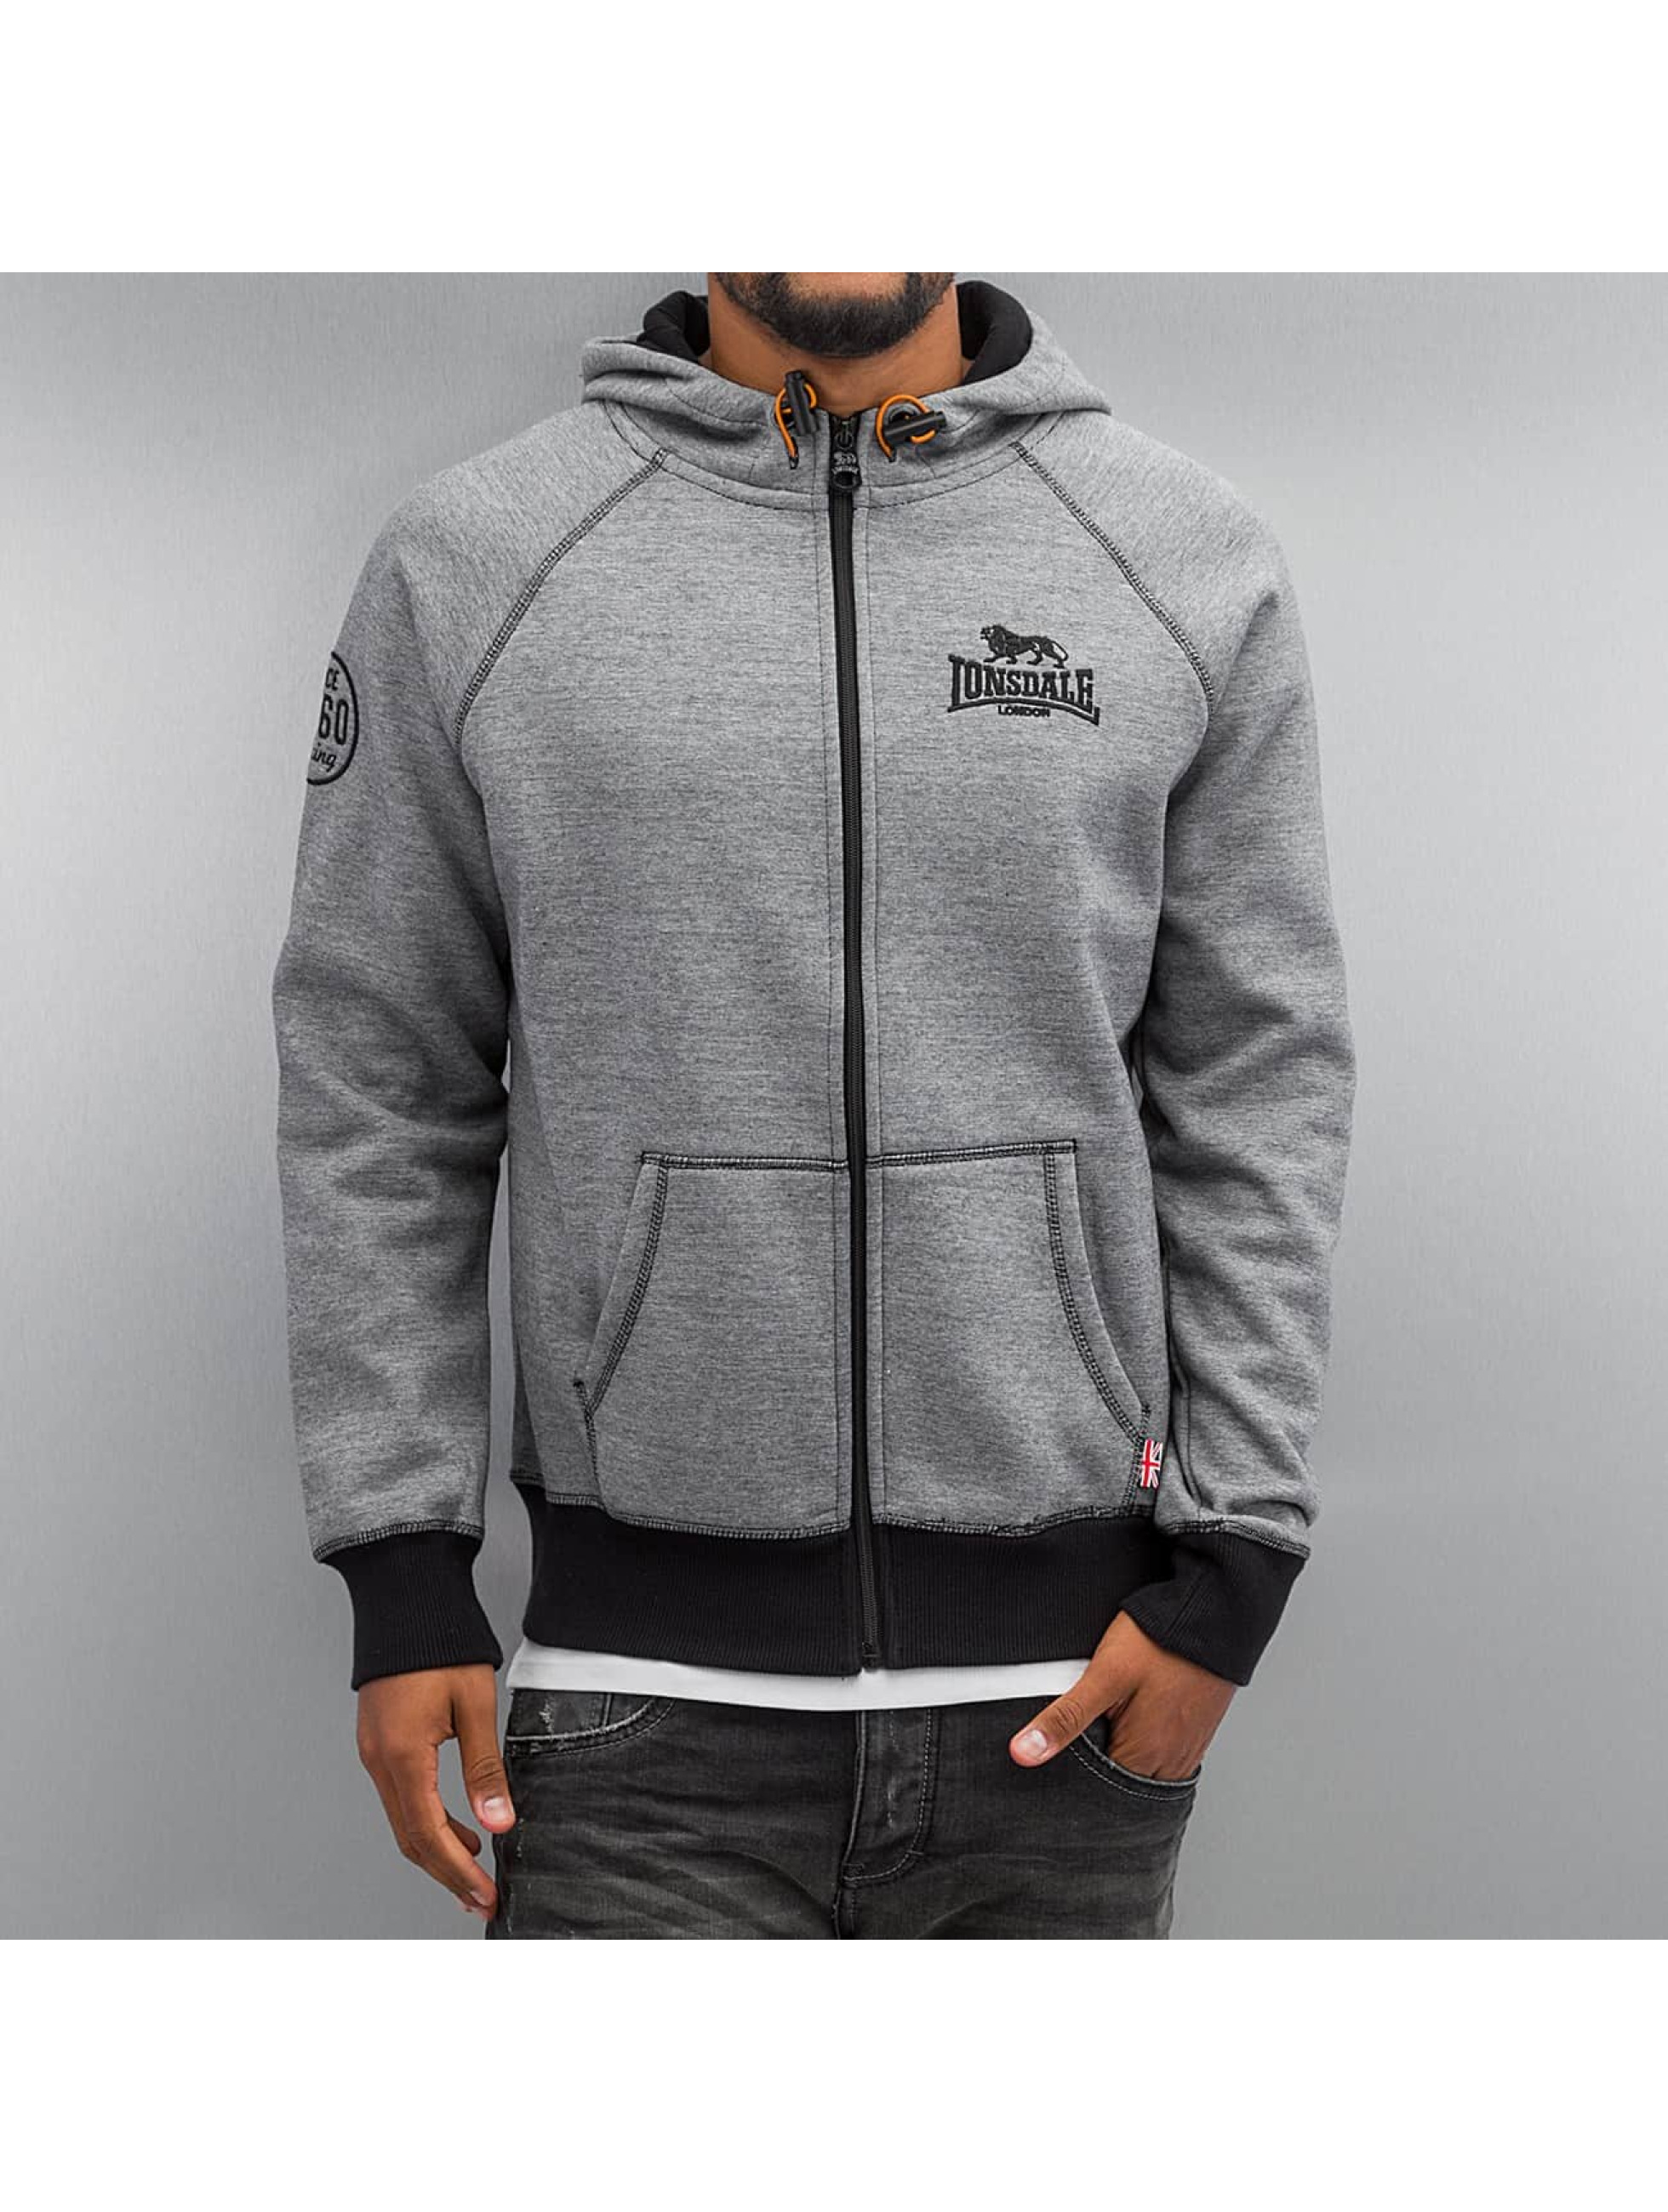 Lonsdale London Zip Hoodie London grau